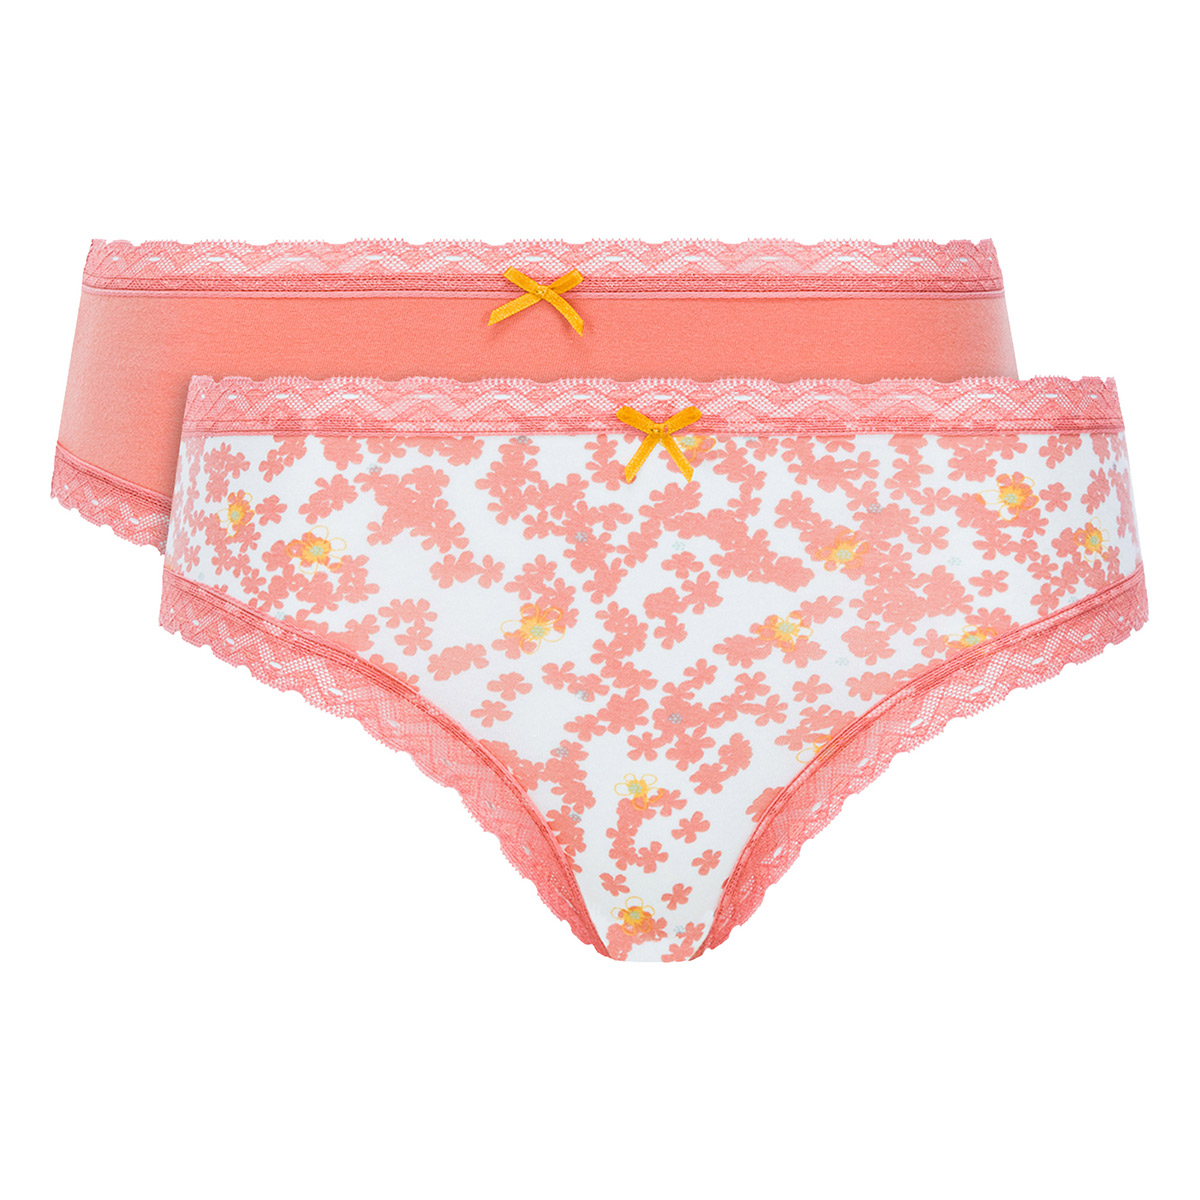 Pack of 2 Bikini Knickers in Orange Print - Cotton Fancy - PLAYTEX